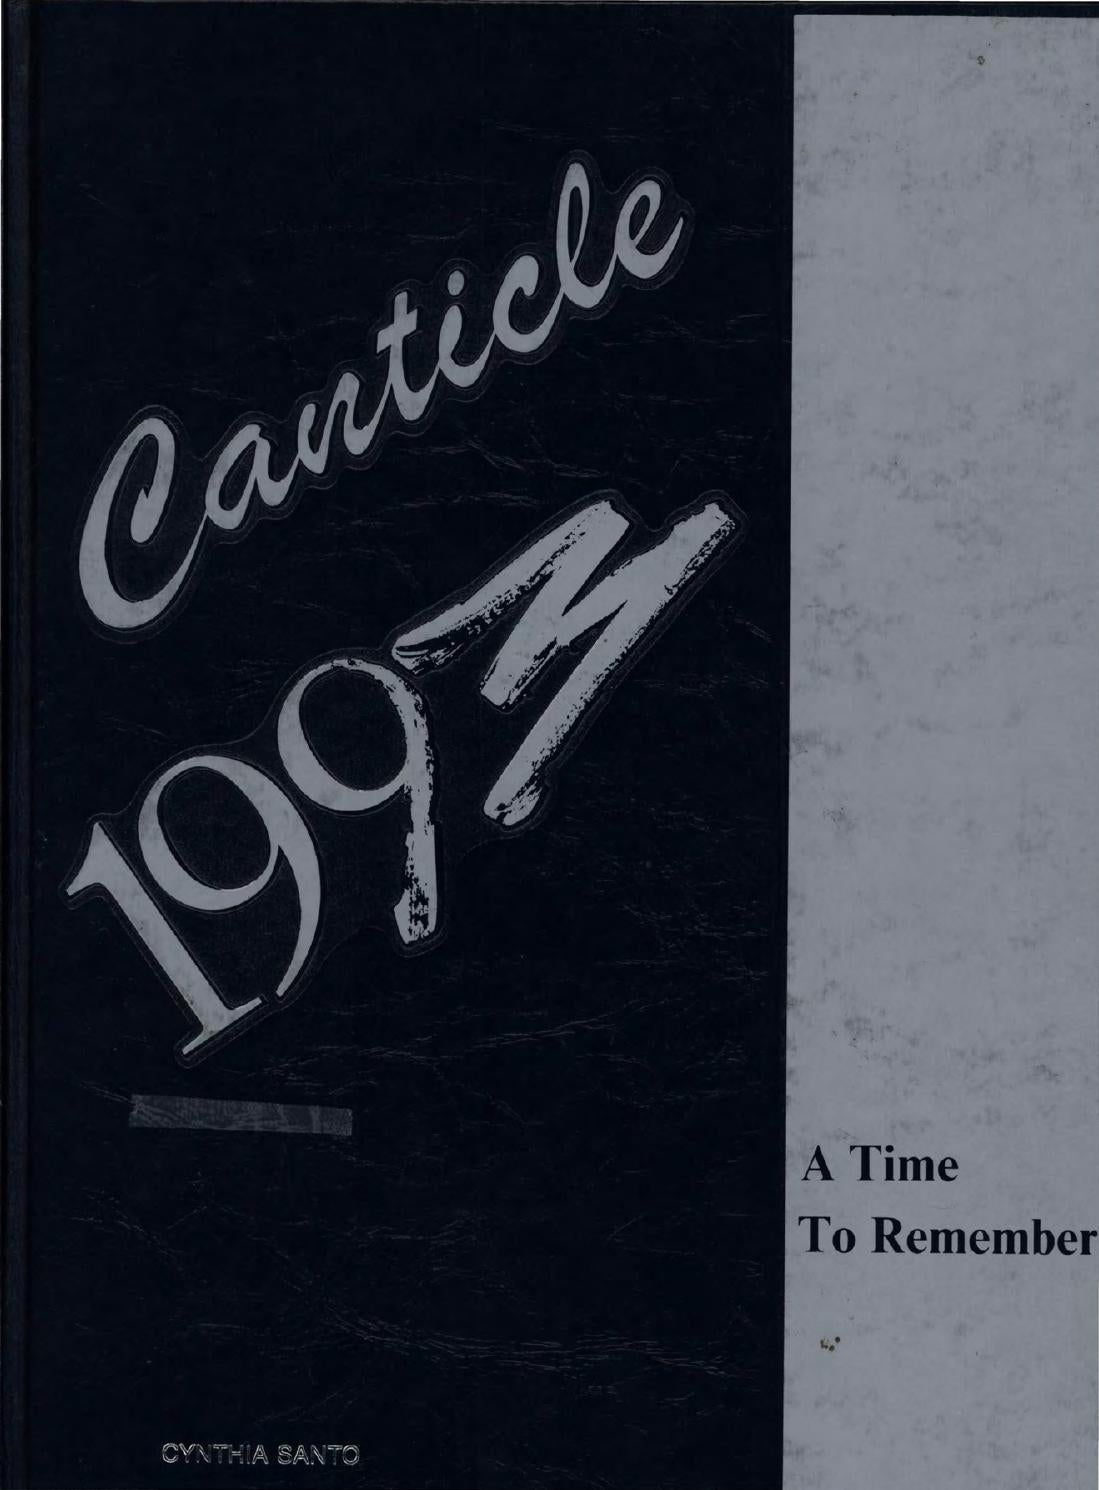 Notre Dame High School Canticle 1993web By Makaroni Cheese 250 Gr Wjk Un Lawrenceville New Jersey Issuu